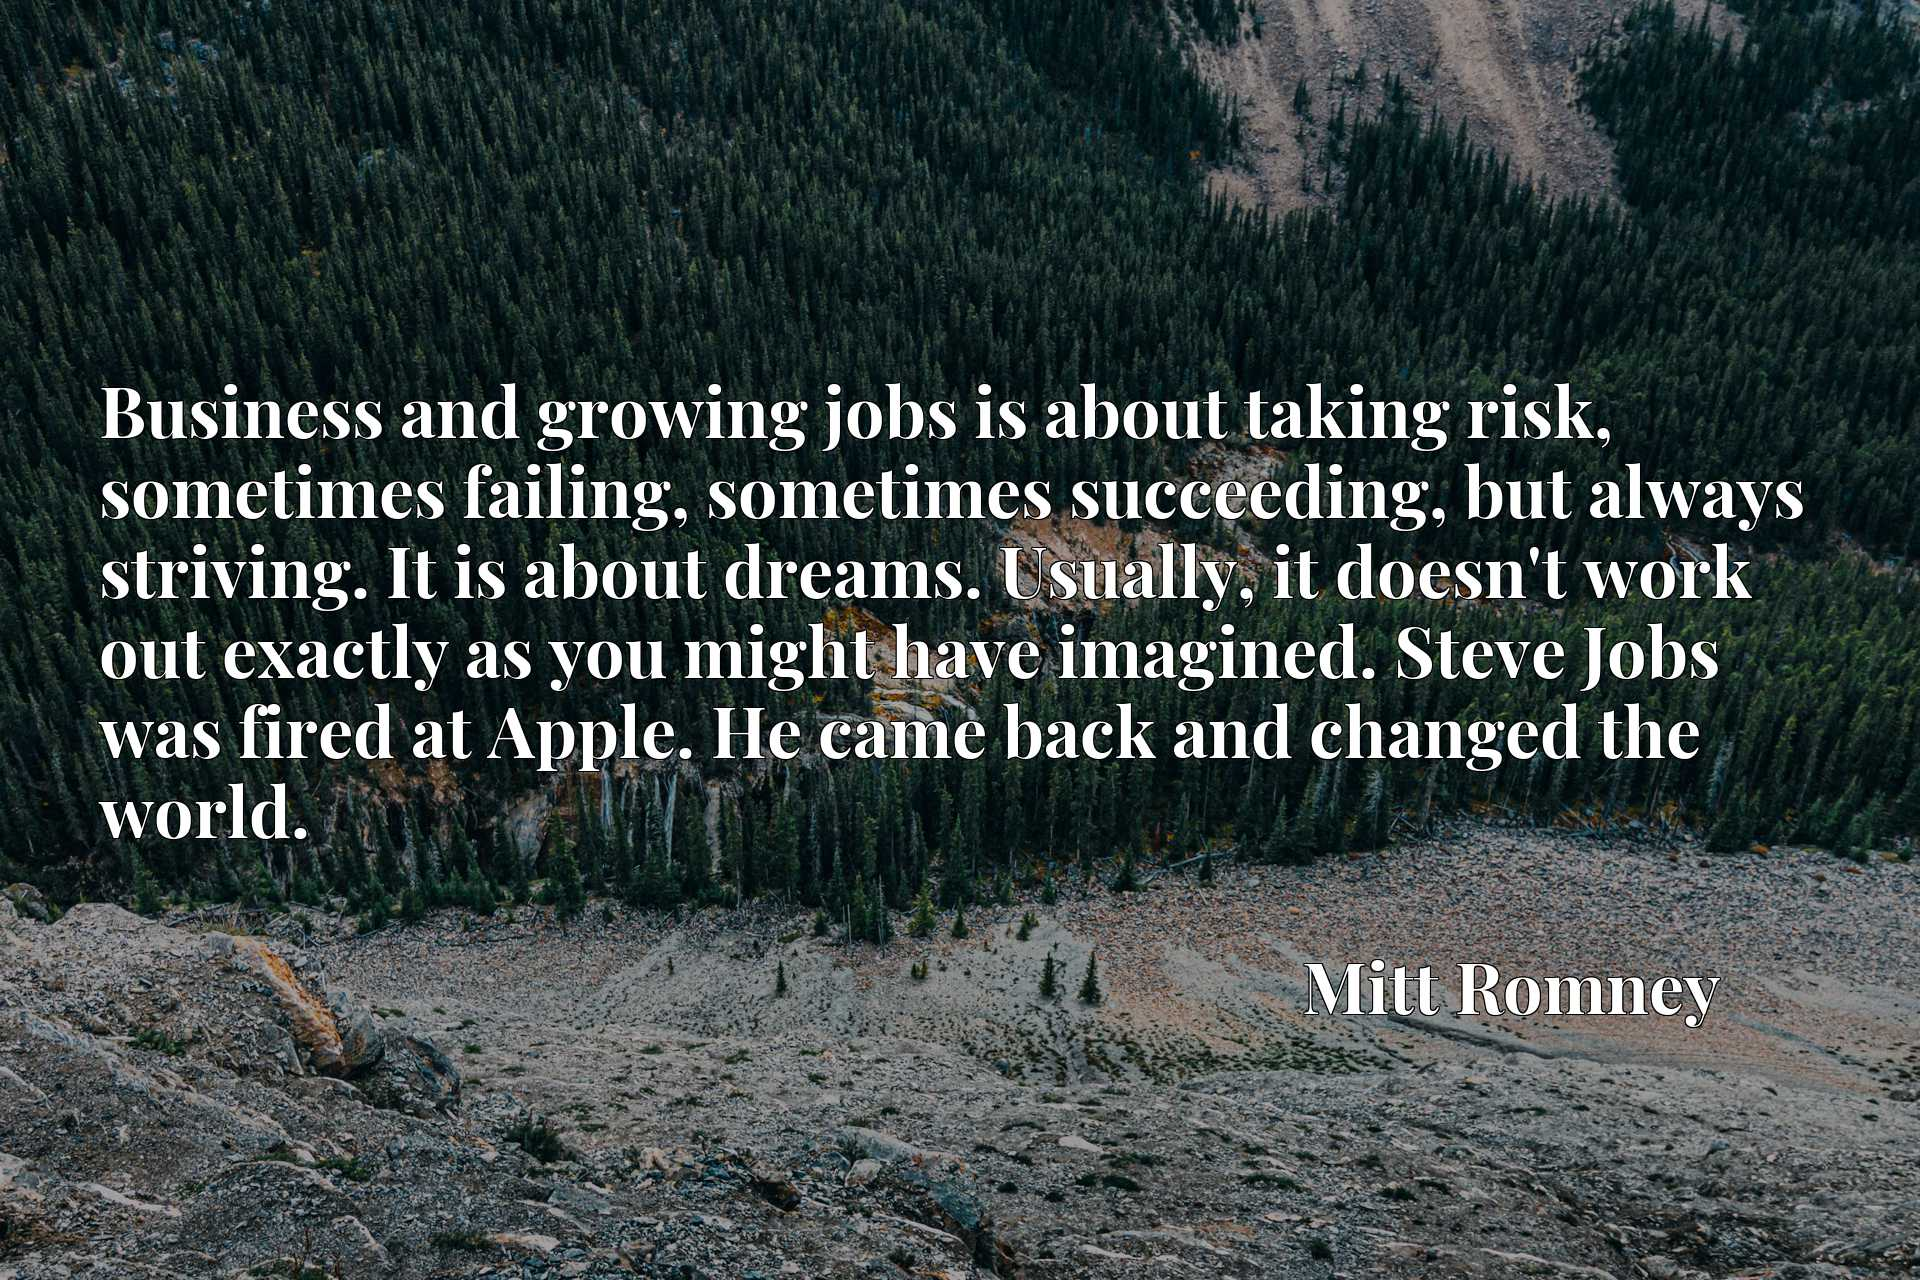 Business and growing jobs is about taking risk, sometimes failing, sometimes succeeding, but always striving. It is about dreams. Usually, it doesn't work out exactly as you might have imagined. Steve Jobs was fired at Apple. He came back and changed the world.